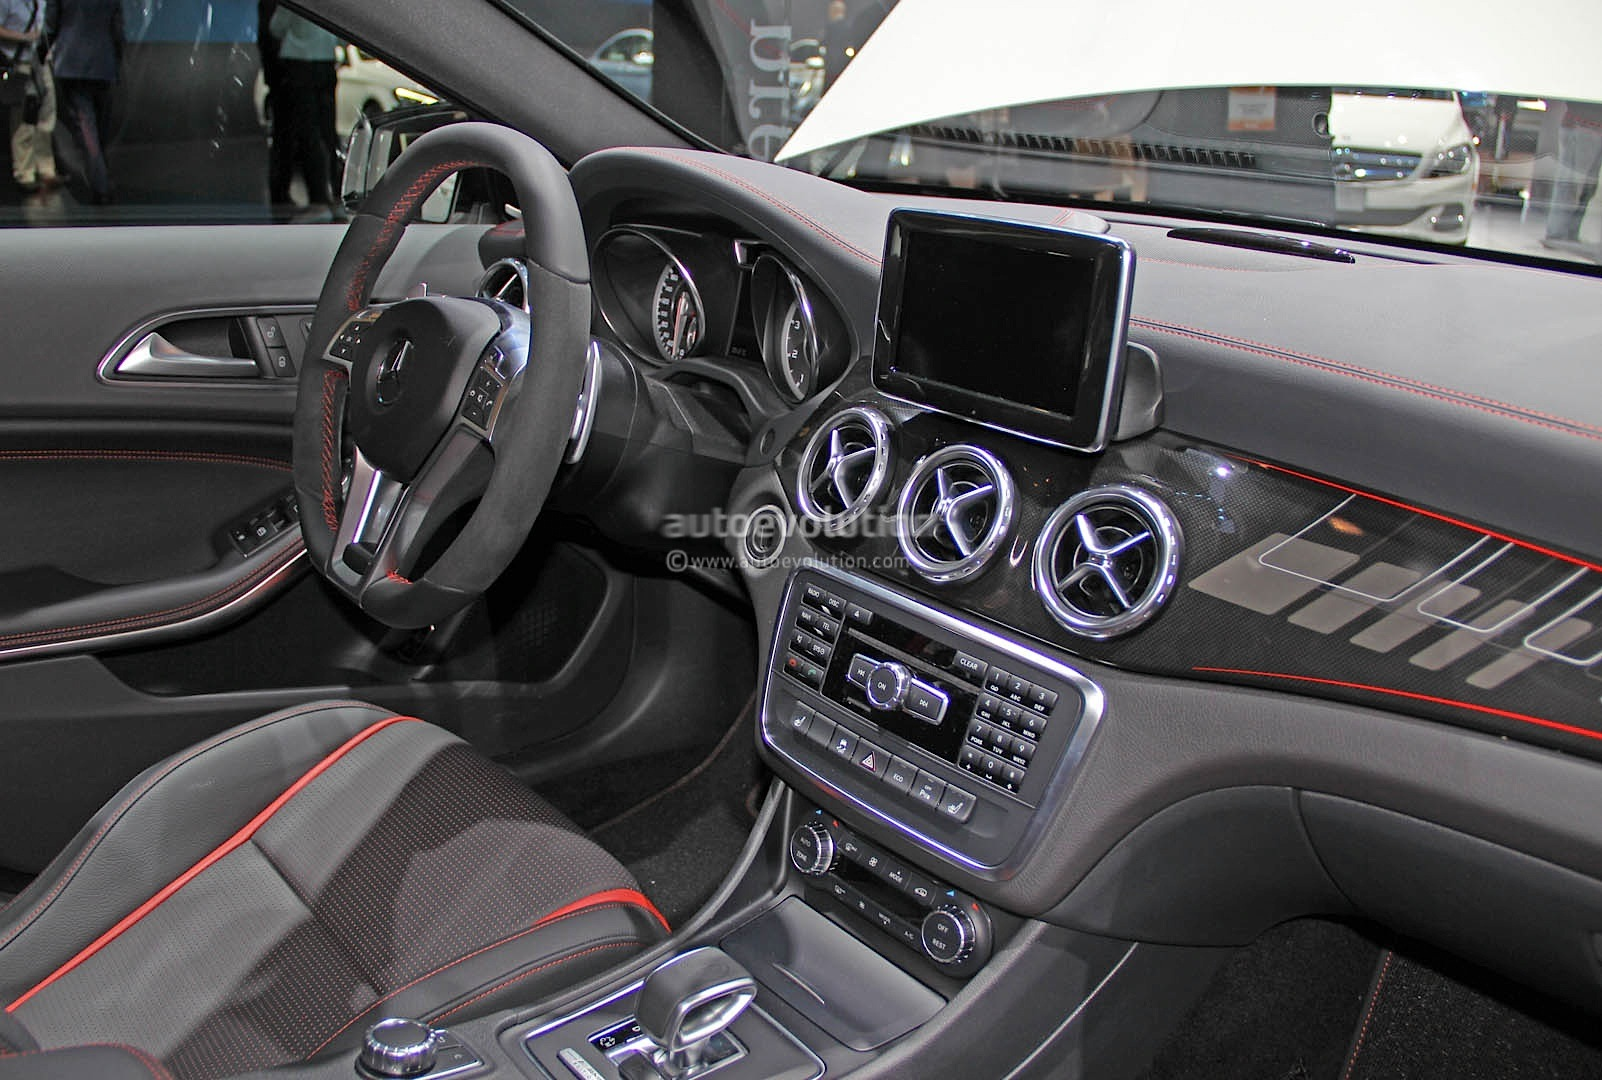 2015 Gla 45 Amg Live Photos From Naias Autoevolution